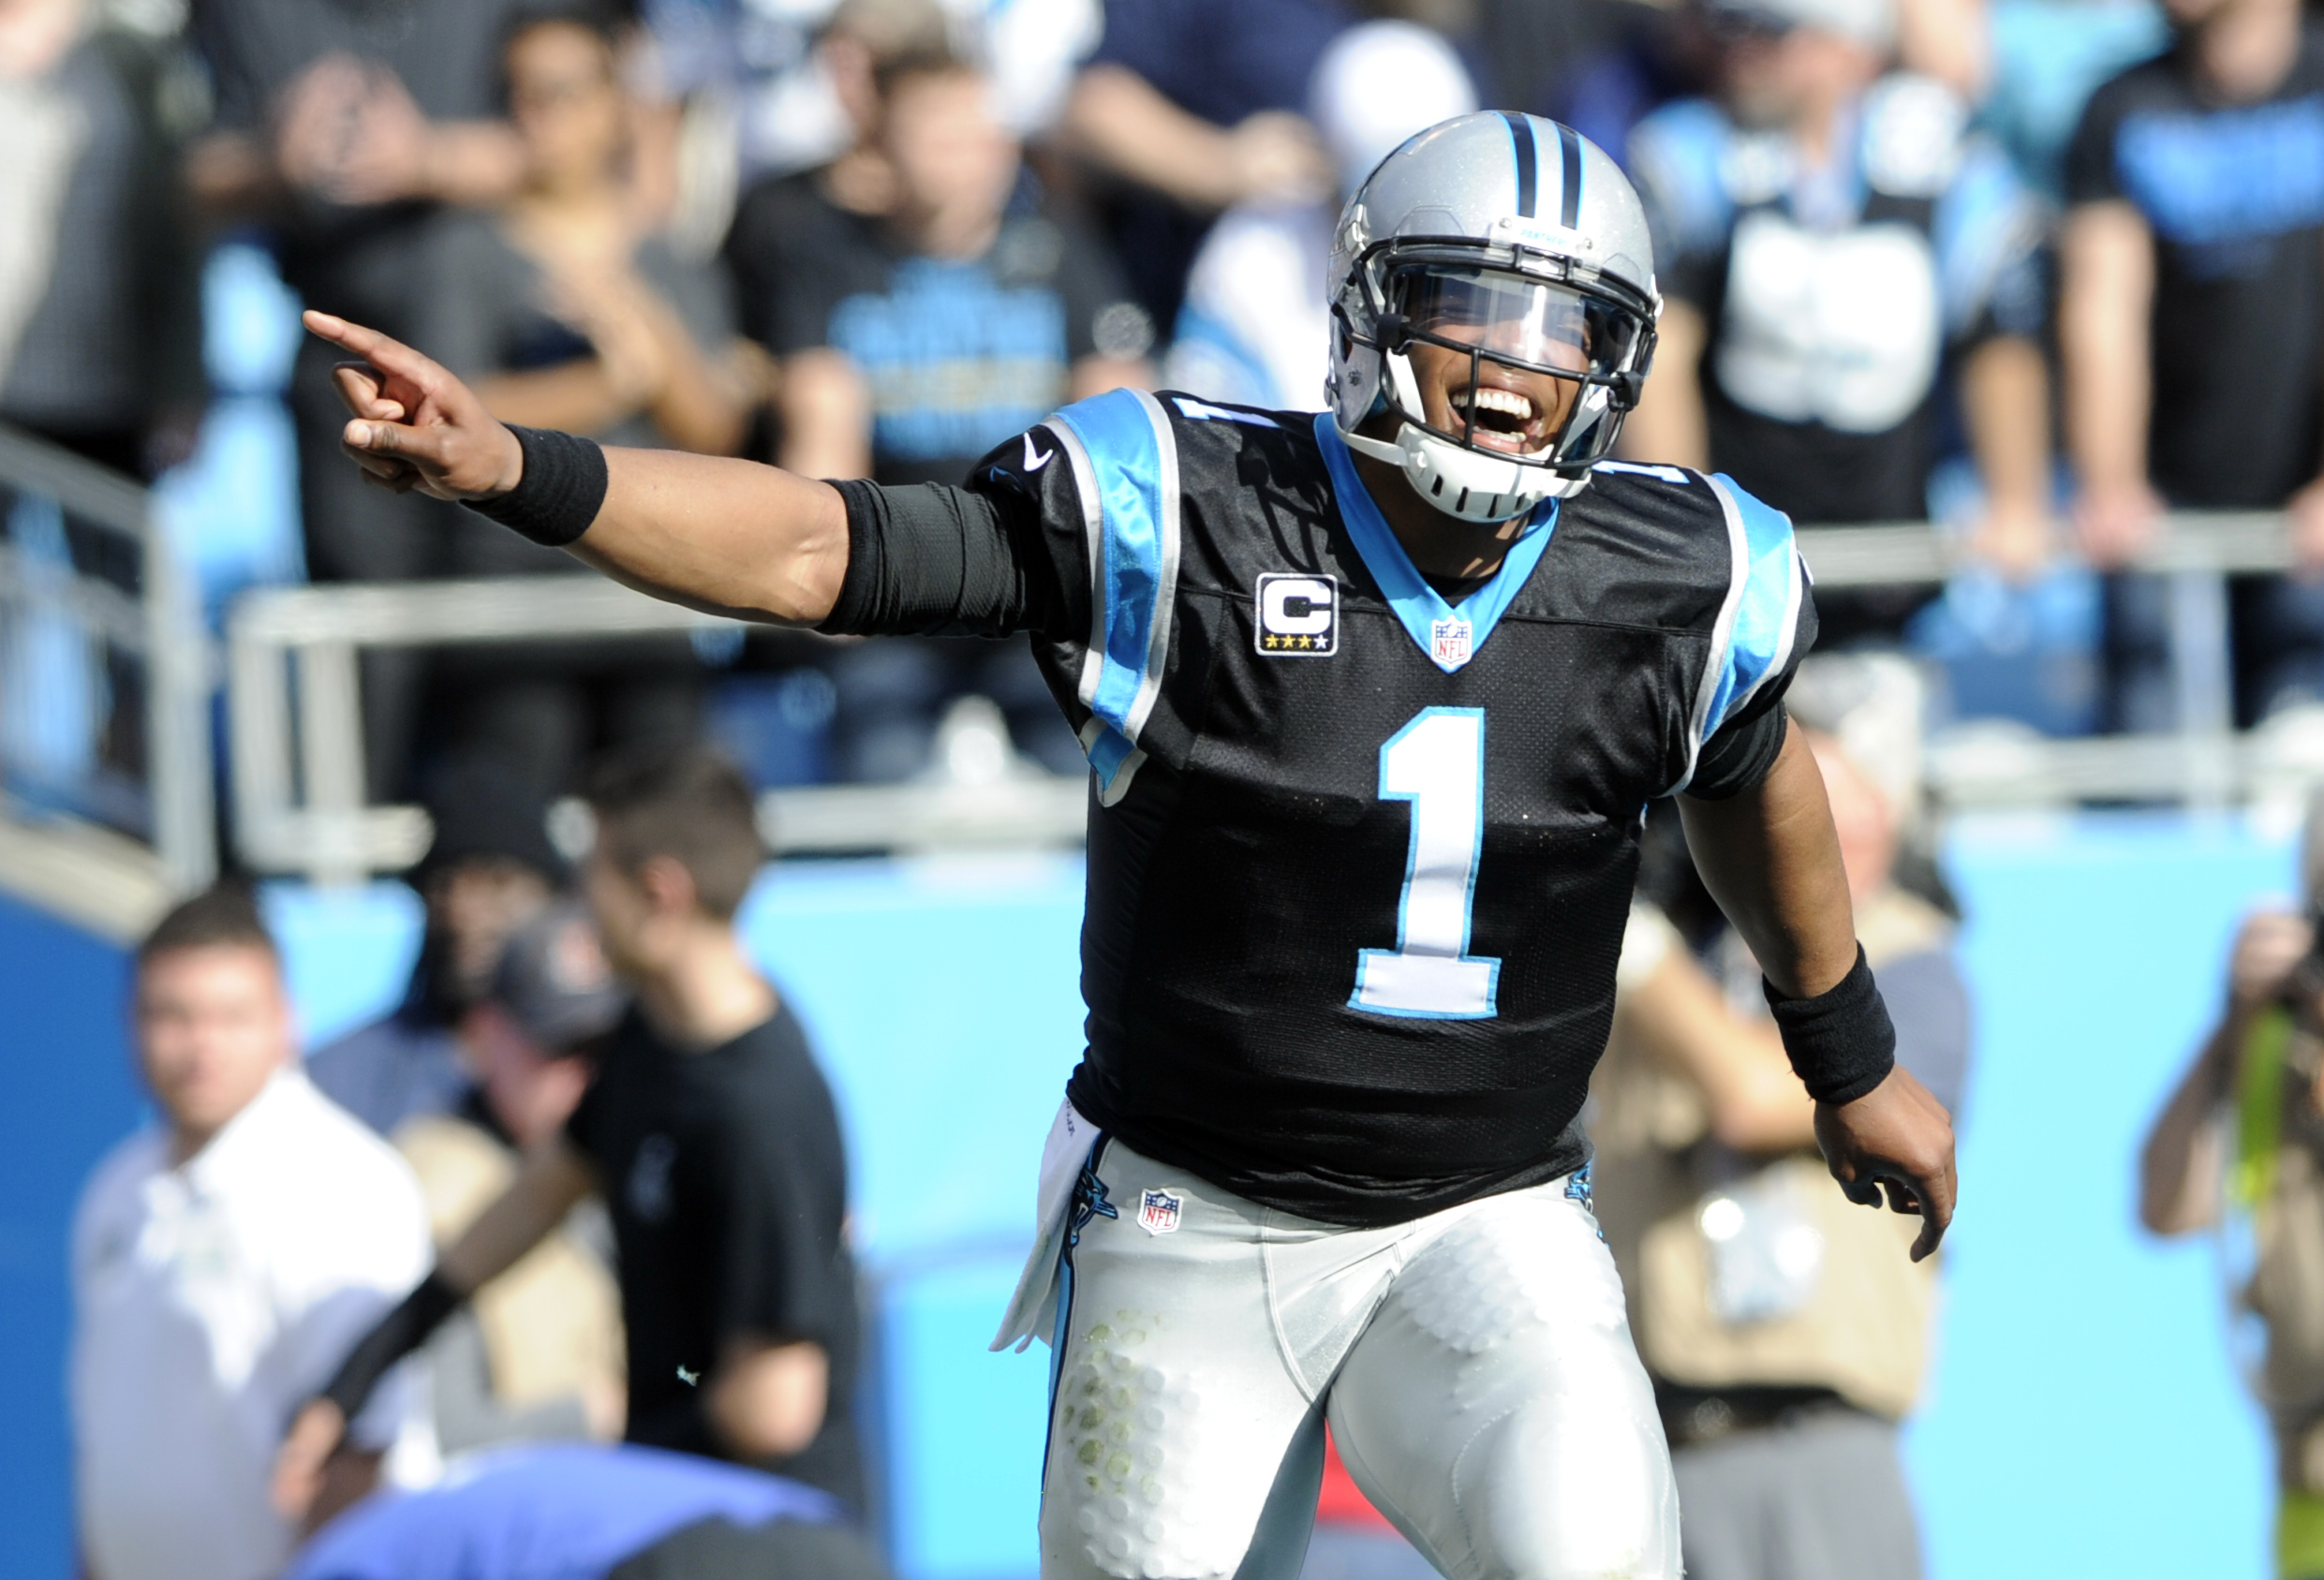 Carolina Panthers' Cam Newton (1) celebrates after a touchdown against the Atlanta Falcons in the first half of an NFL football game in Charlotte, N.C., Sunday, Dec. 13, 2015. (AP Photo/Mike McCarn)